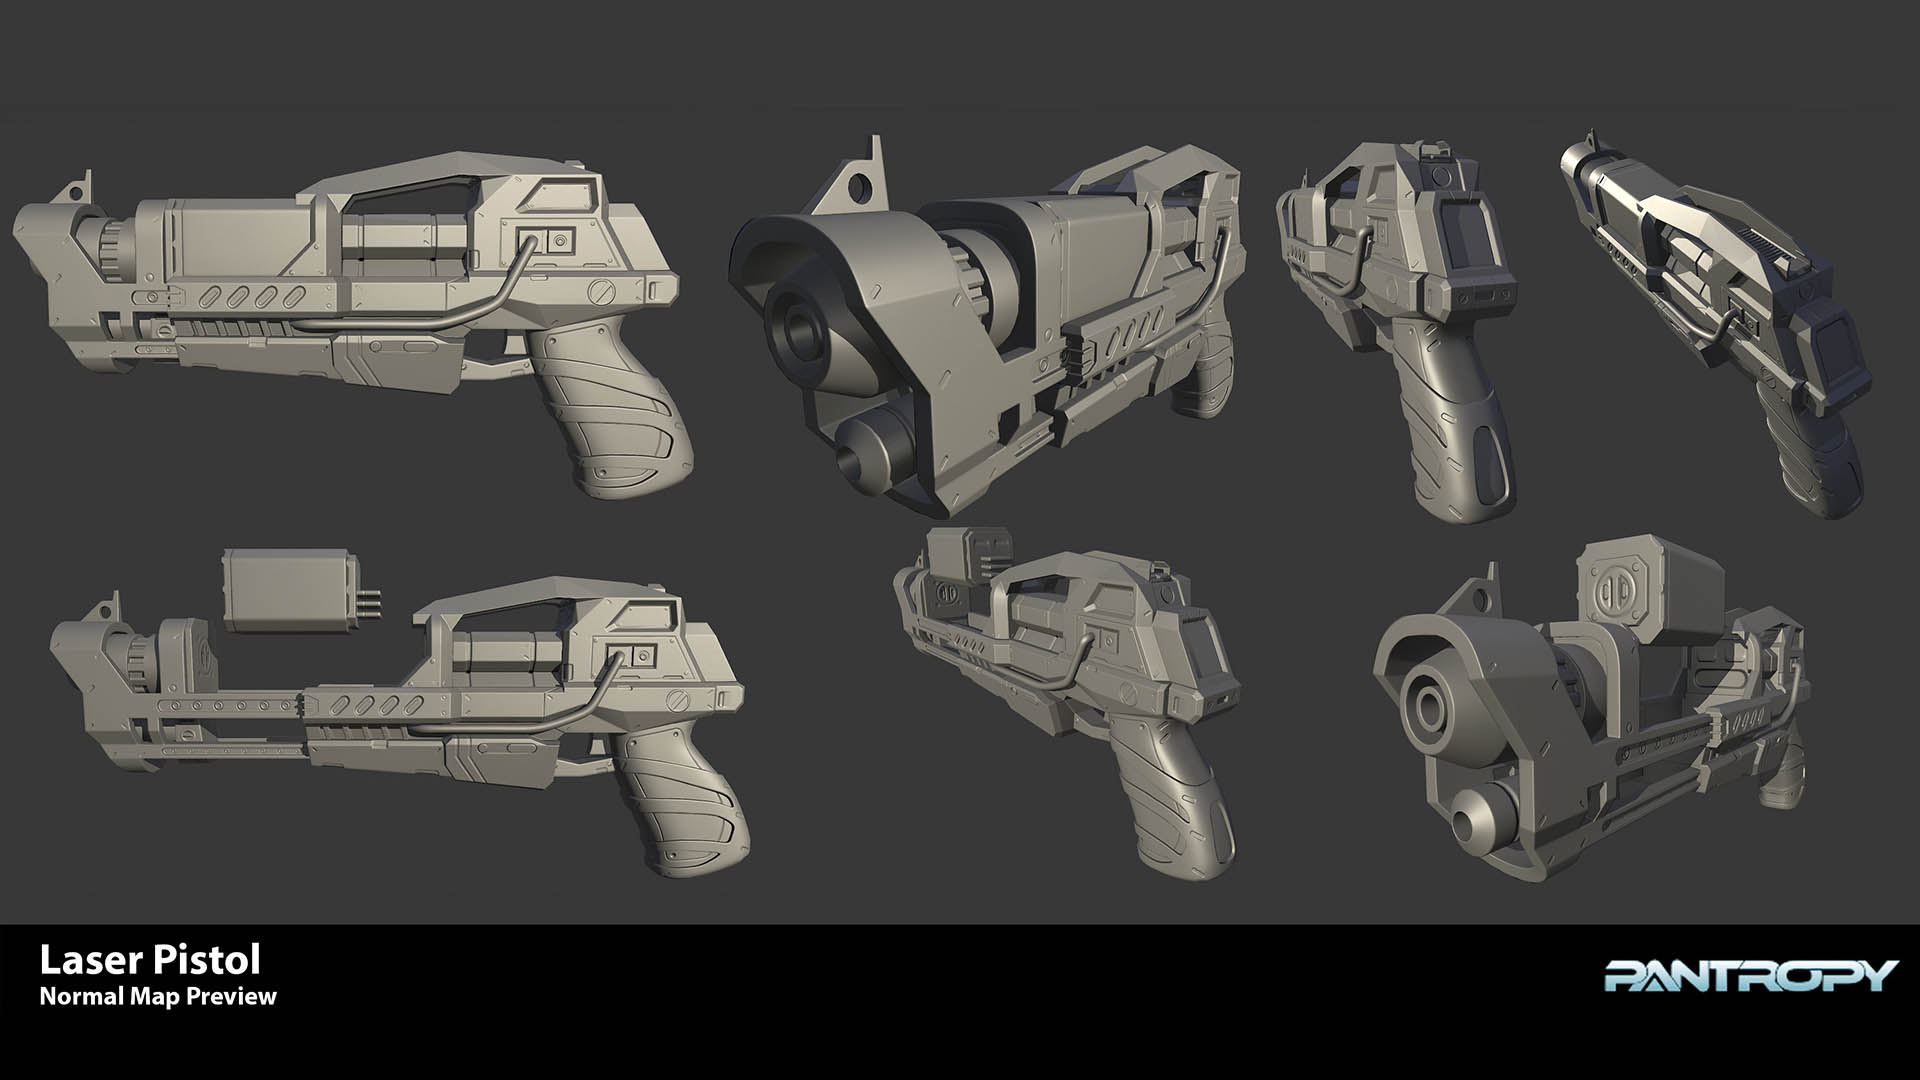 Laser Pistol Normal Map preview